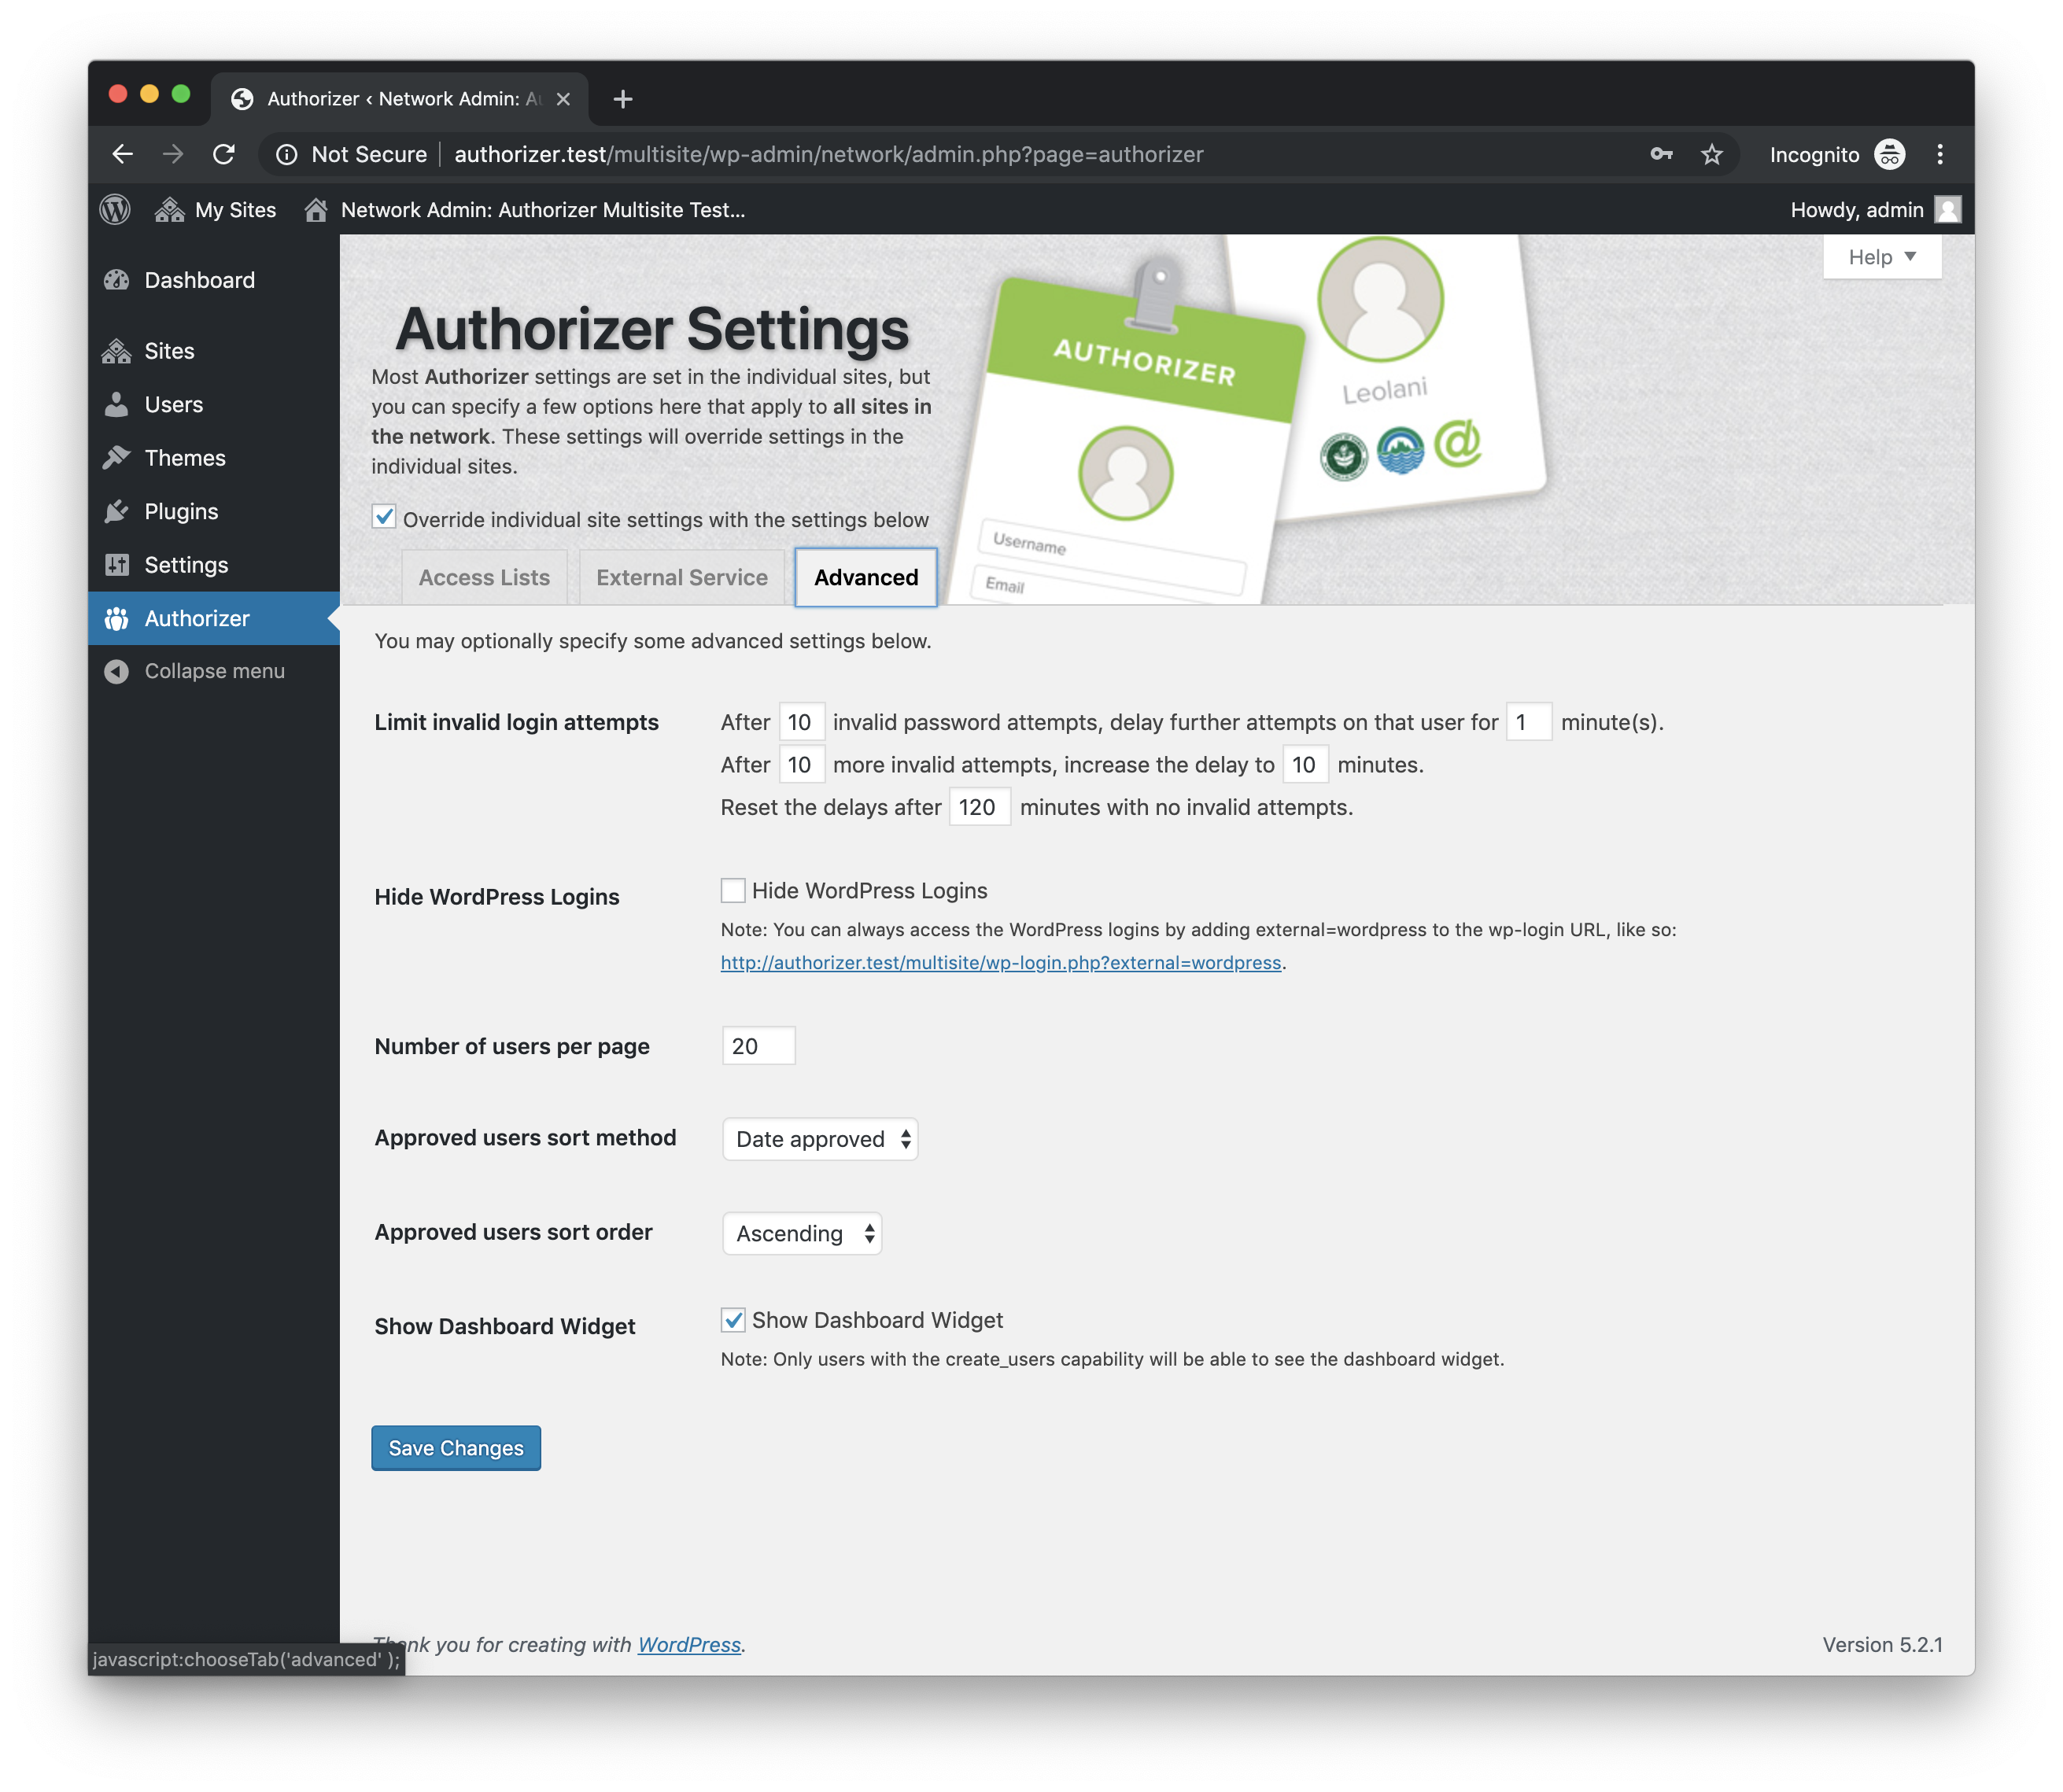 Authorizer Network Admin Options: Advanced.